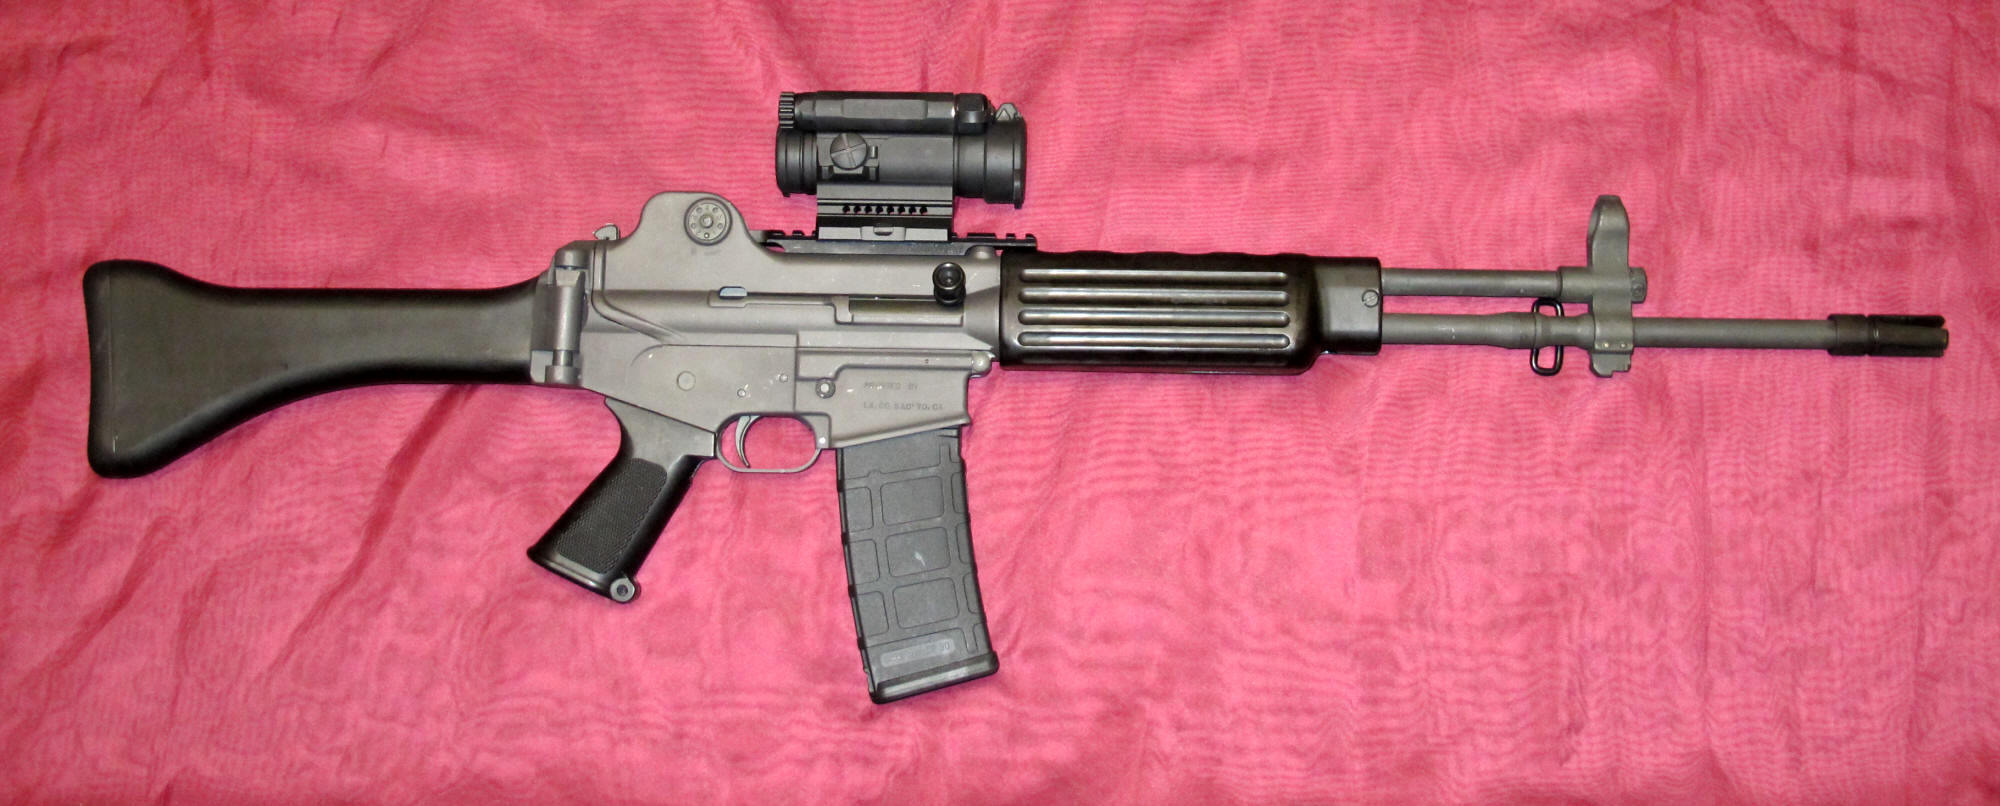 Daewoo DR200 (.223) find at LGS - Page 2 - Survivalist Forum